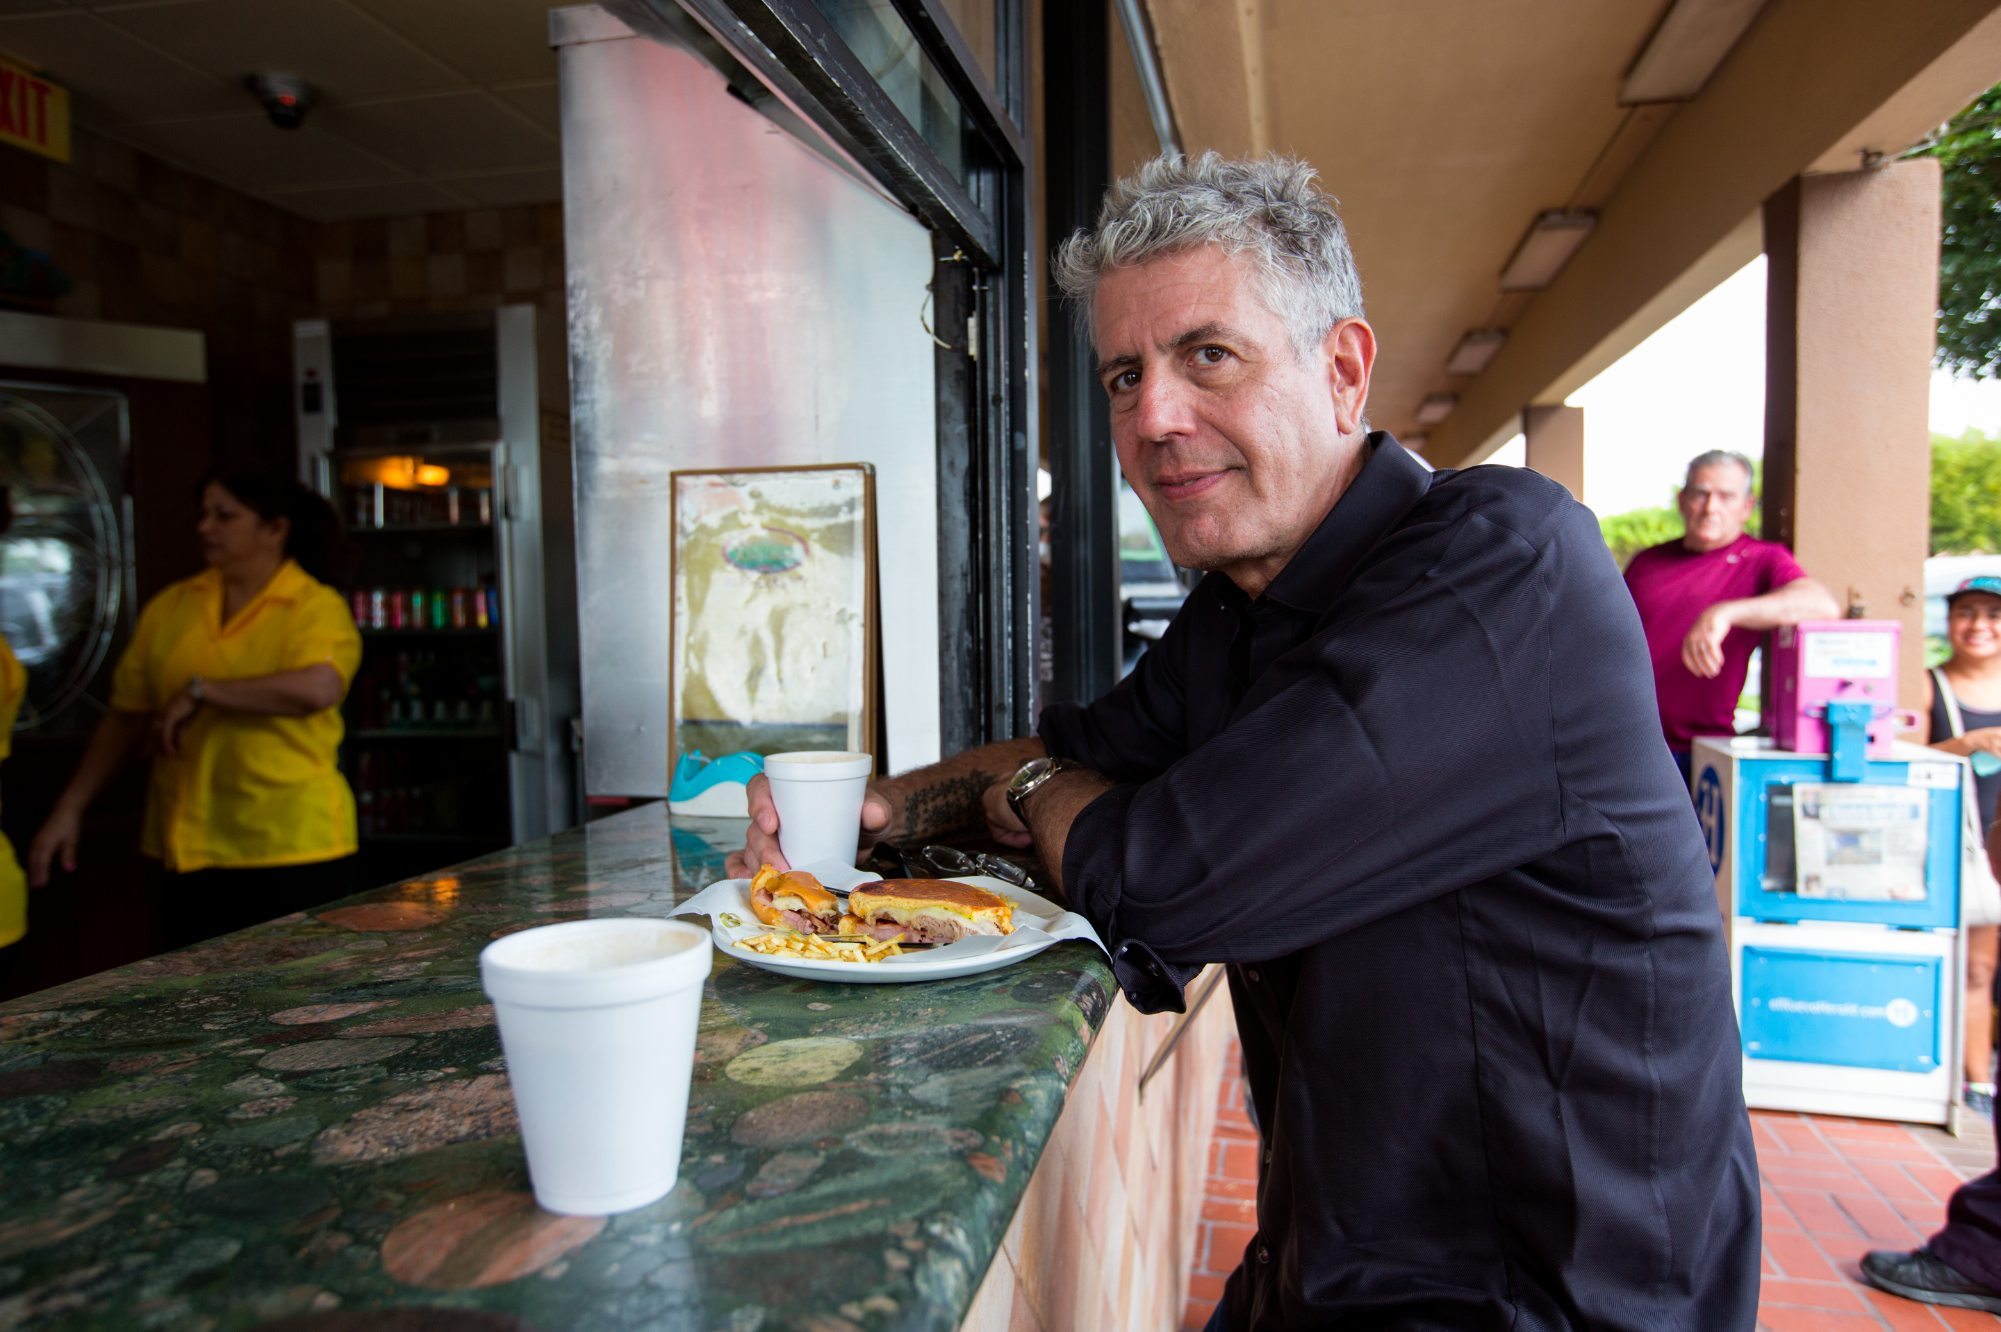 Anthony Bourdain's 'Parts Unknown' Returns for Fifth Season April 26